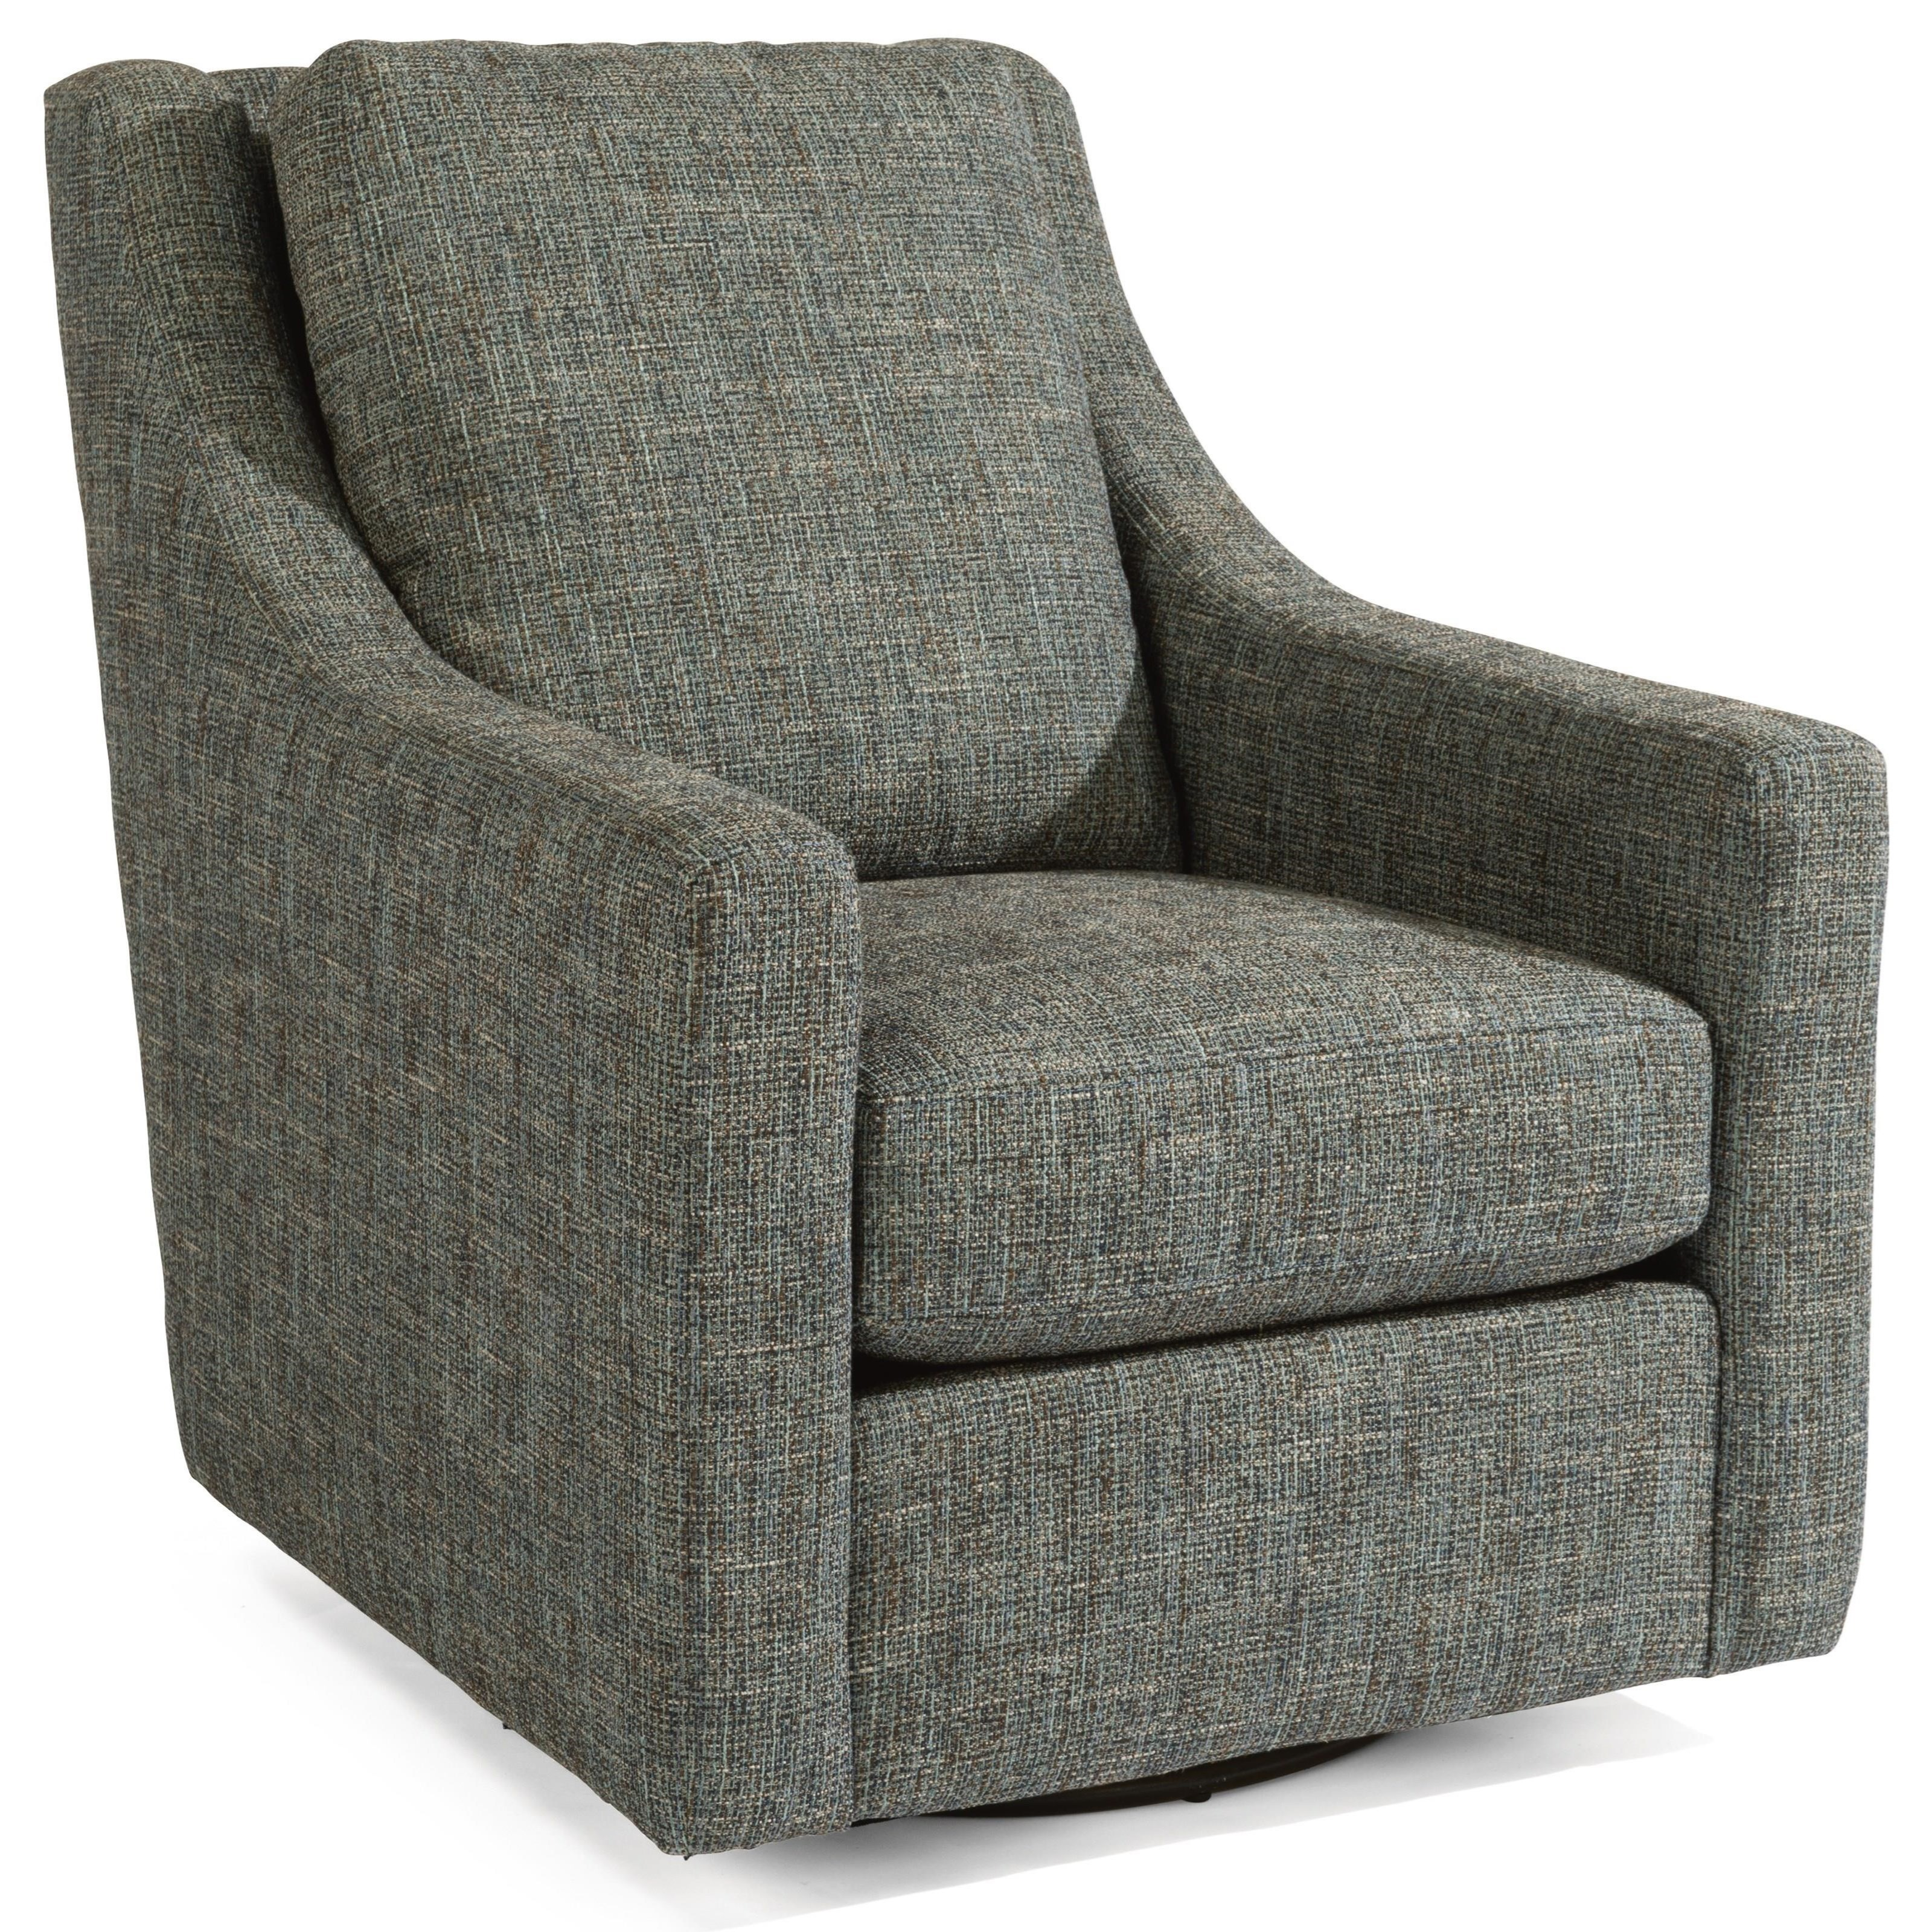 Flexsteel Murph Casual Contemporary Swivel Chair With Loose Pillow Back Conlin S Furniture Upholstered Chairs